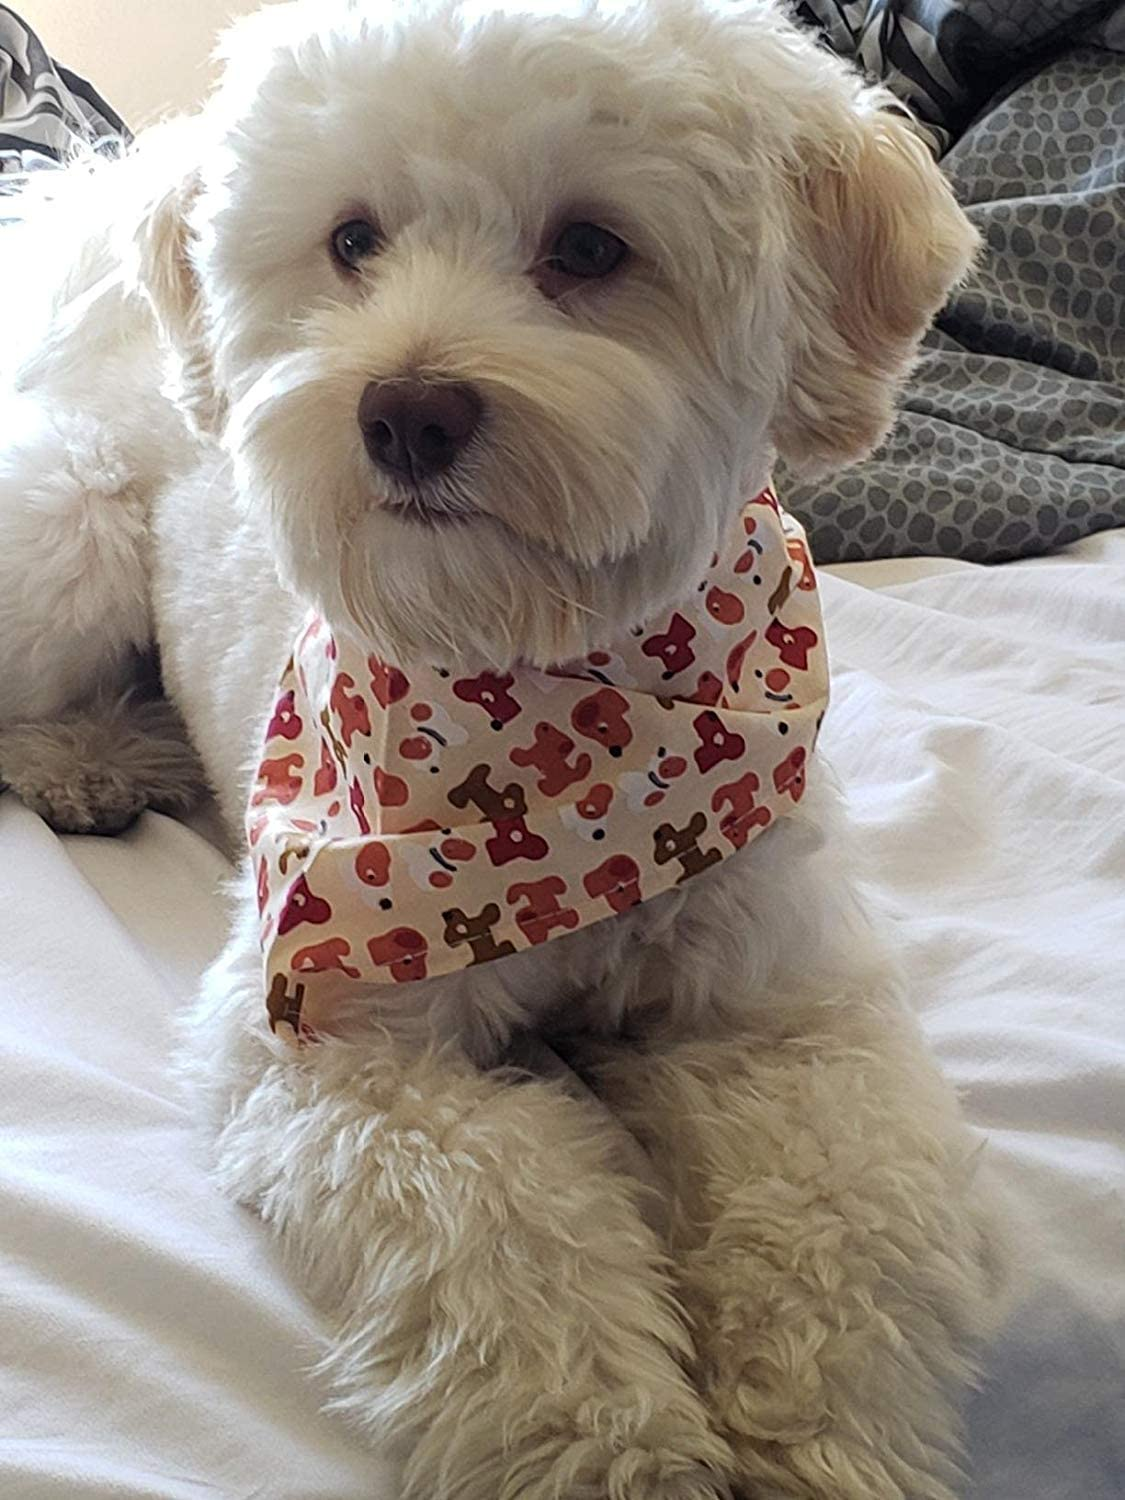 MEWTOGO Dog Bandanas - Washable and Reversible Triangle Cotton Dog Bibs Scarf Assortment Suitable for Puppy Small and Medium Pet 717p979NslL